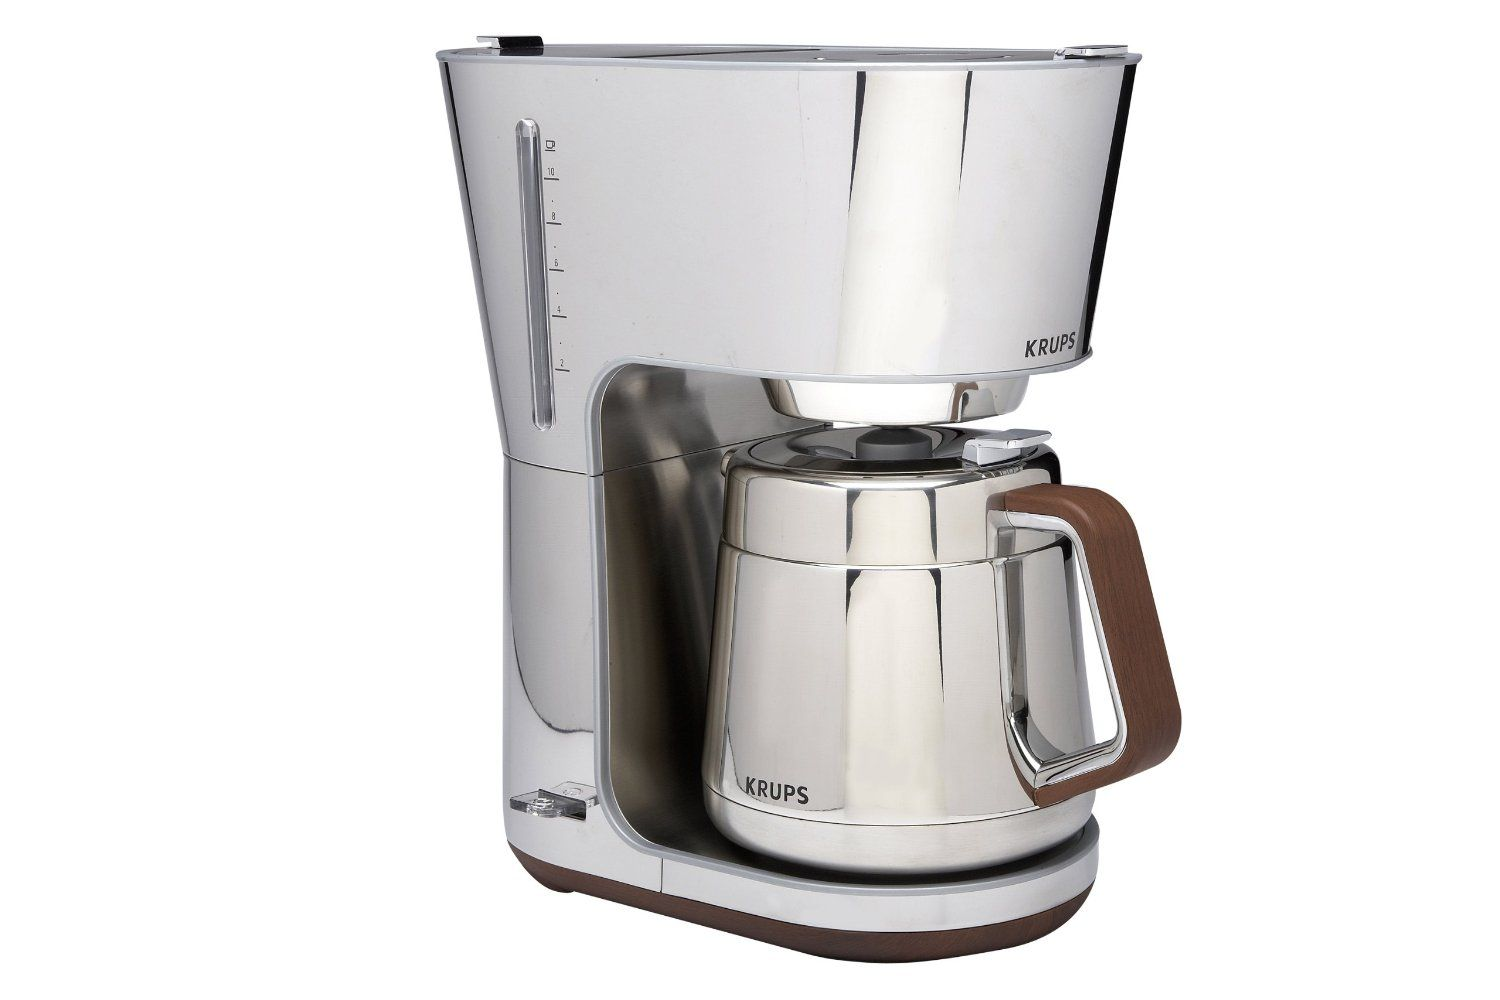 Krups Kt600 Coffee Maker Is A Great Pot That Brewing With All